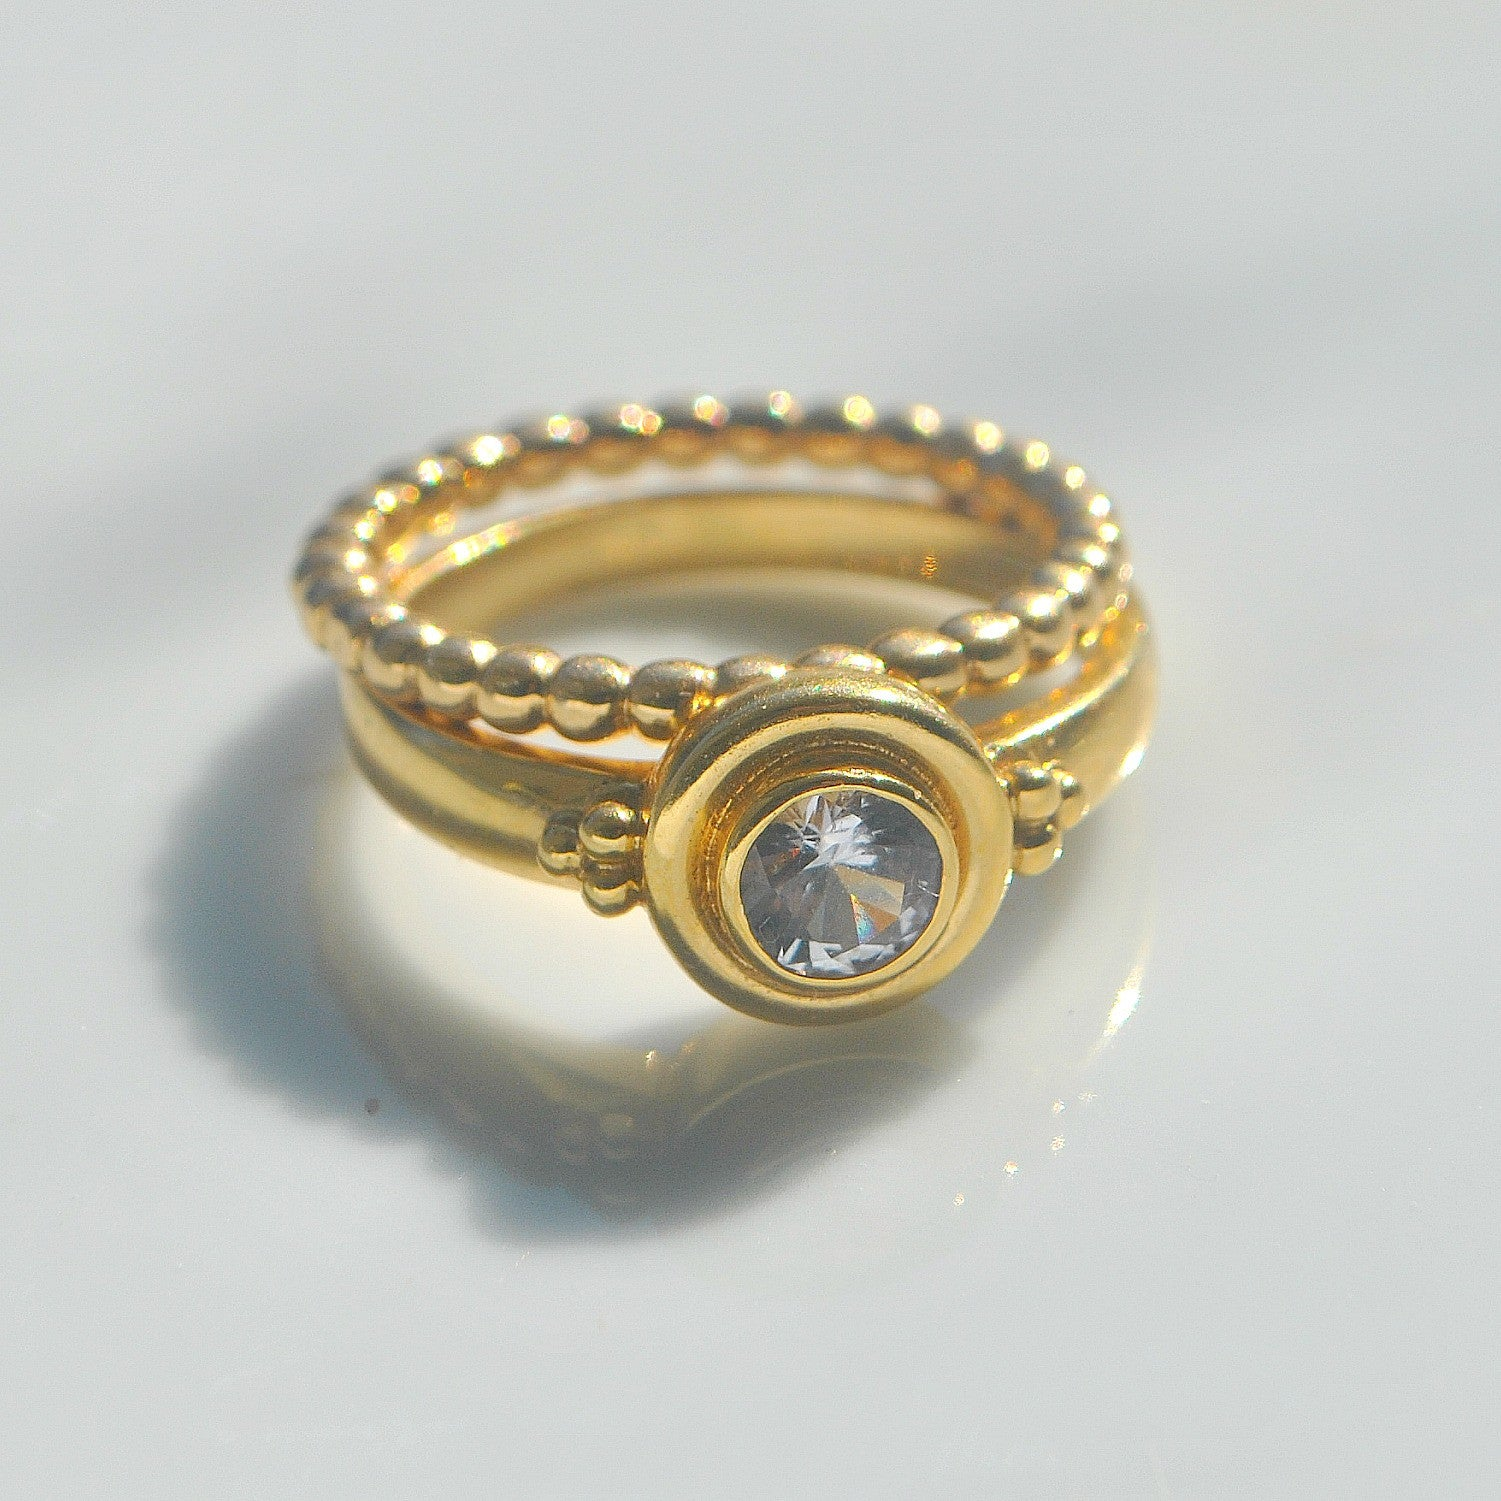 sapphire star ixlib ring items white oval ebth silver gold rb grey mt